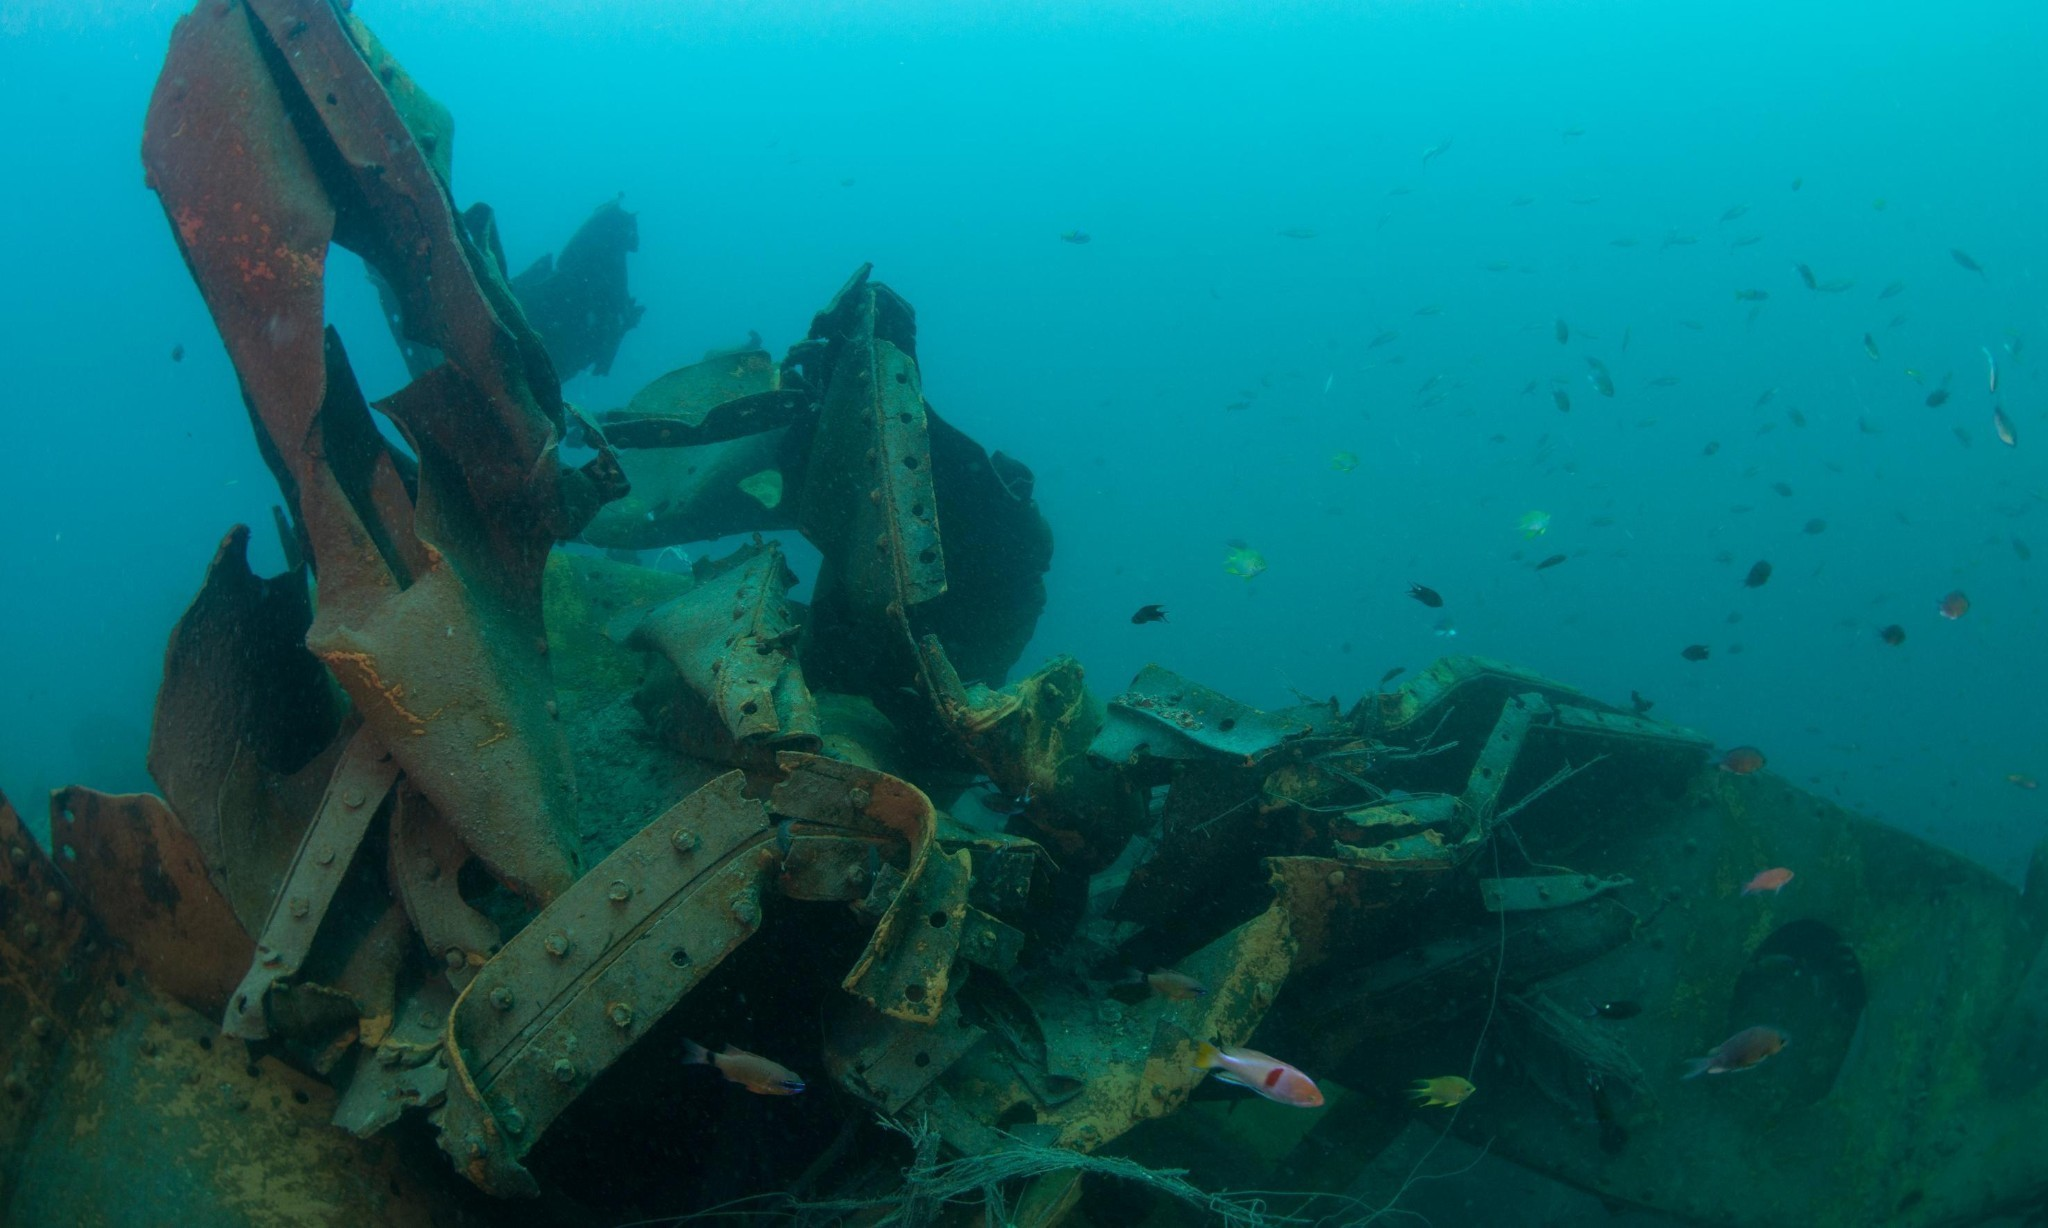 Images reveal three more Japanese WWII shipwrecks torn apart for scrap